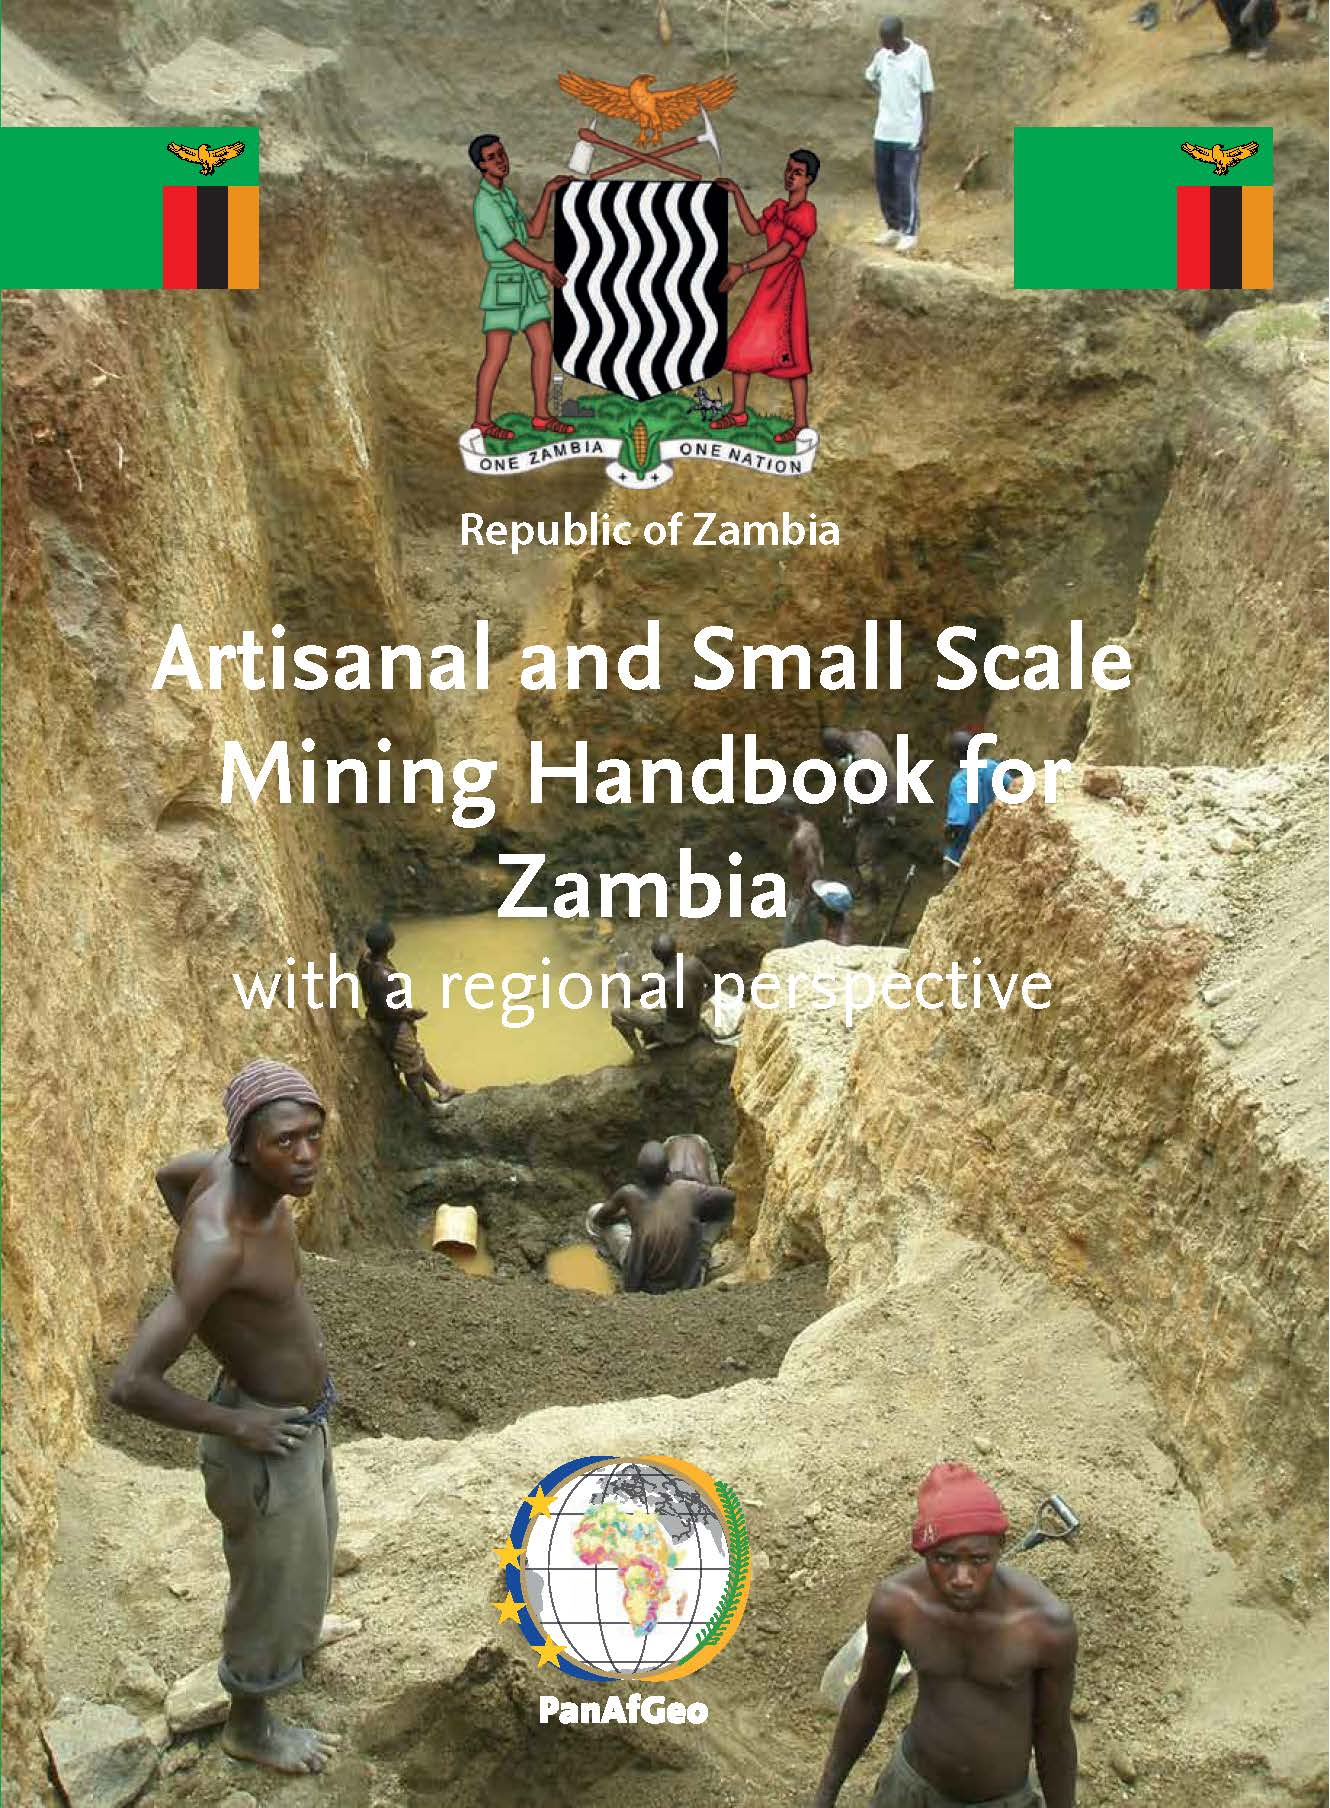 Artisanal and Small-Scale Mining Handbook for Zambia